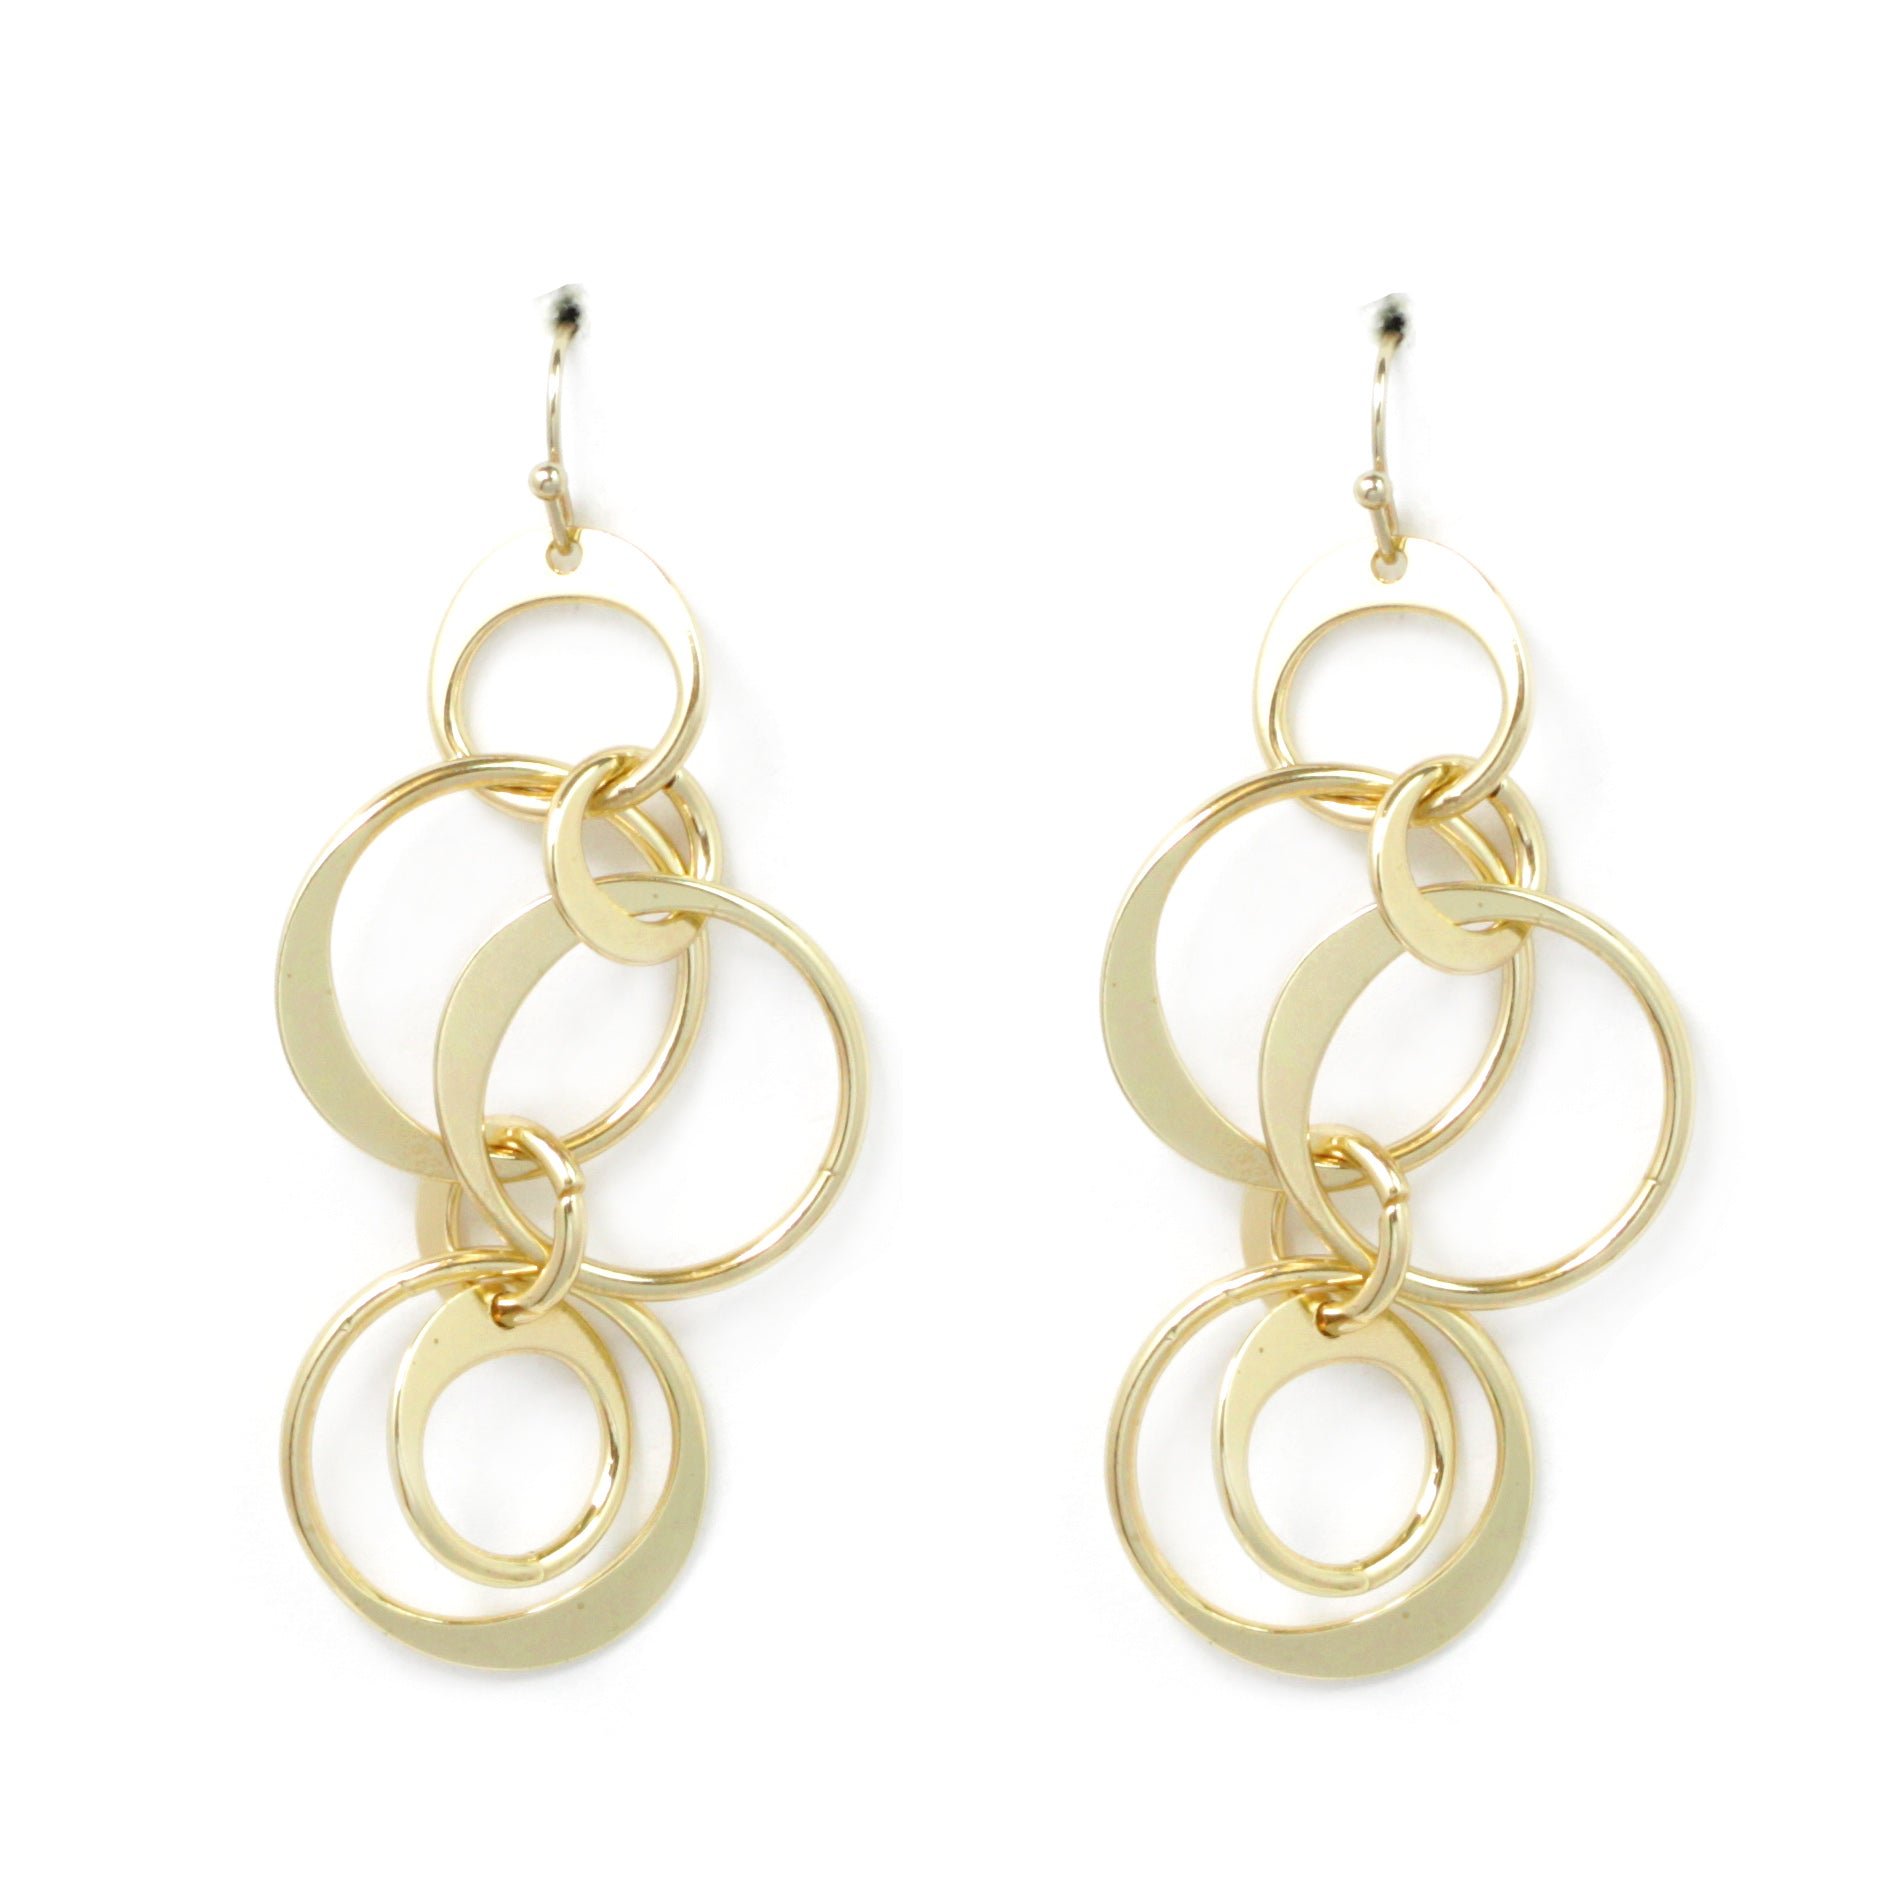 Geometric Metal Hoop Earrings